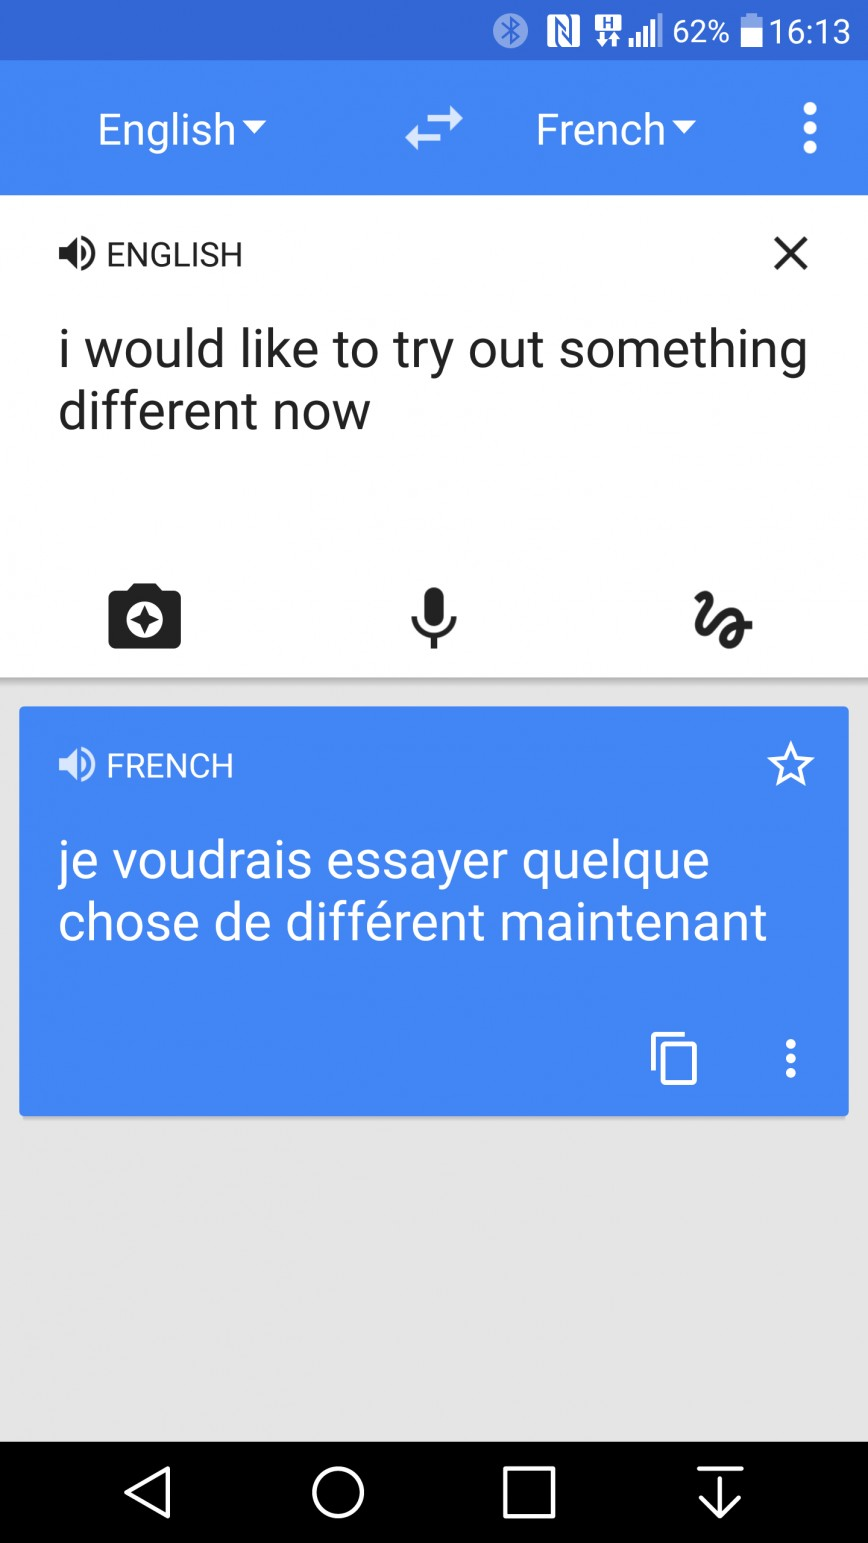 009 Nexus2cee Ggl Essay Example Essayer Beautiful French Conjugation Meaning Verb